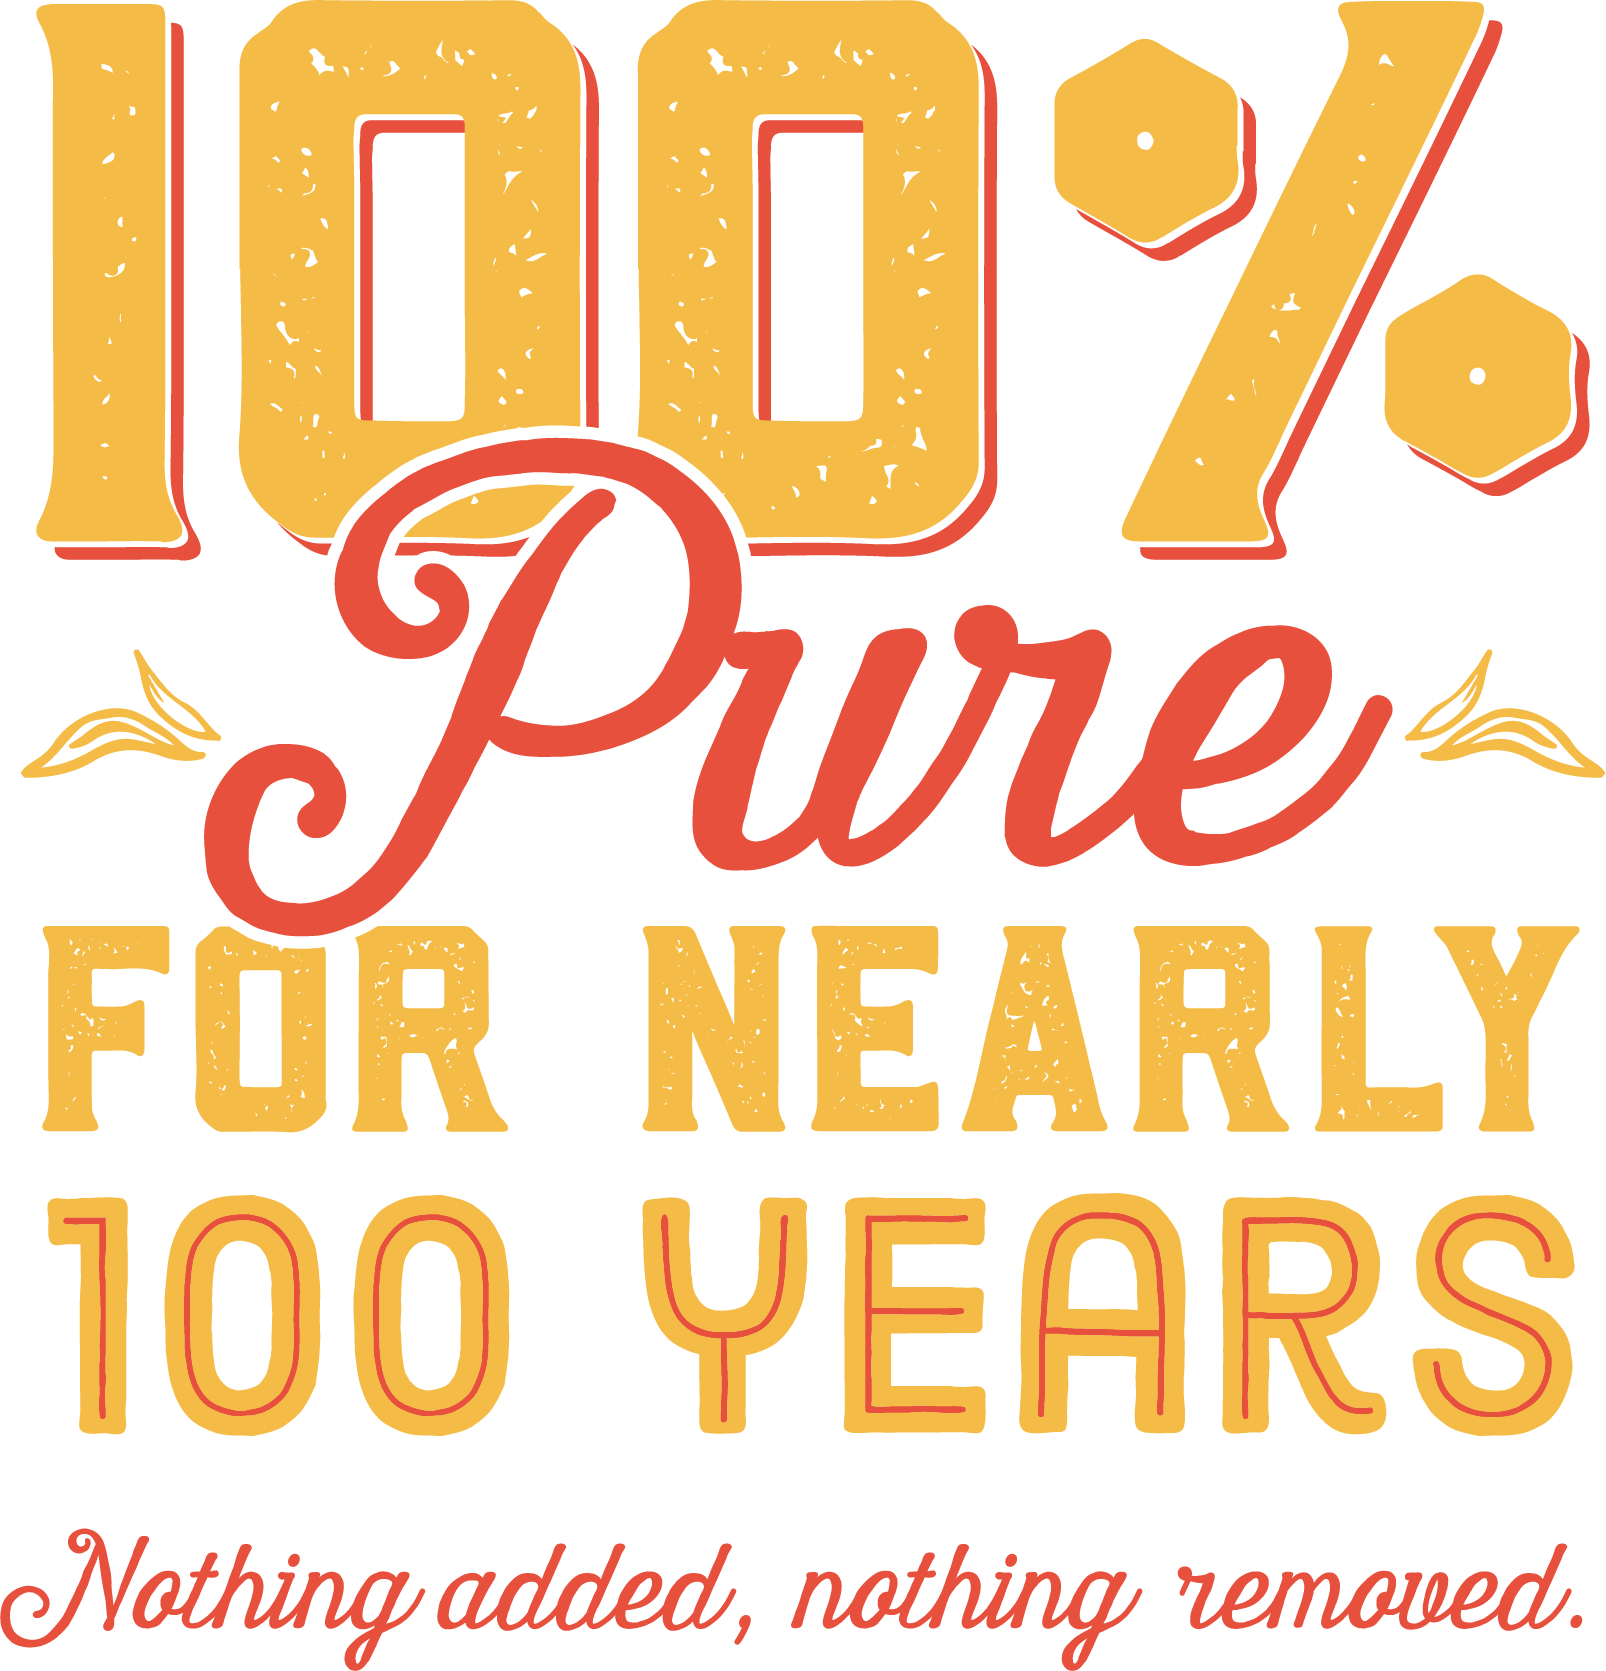 100% pure for nearly 100 years